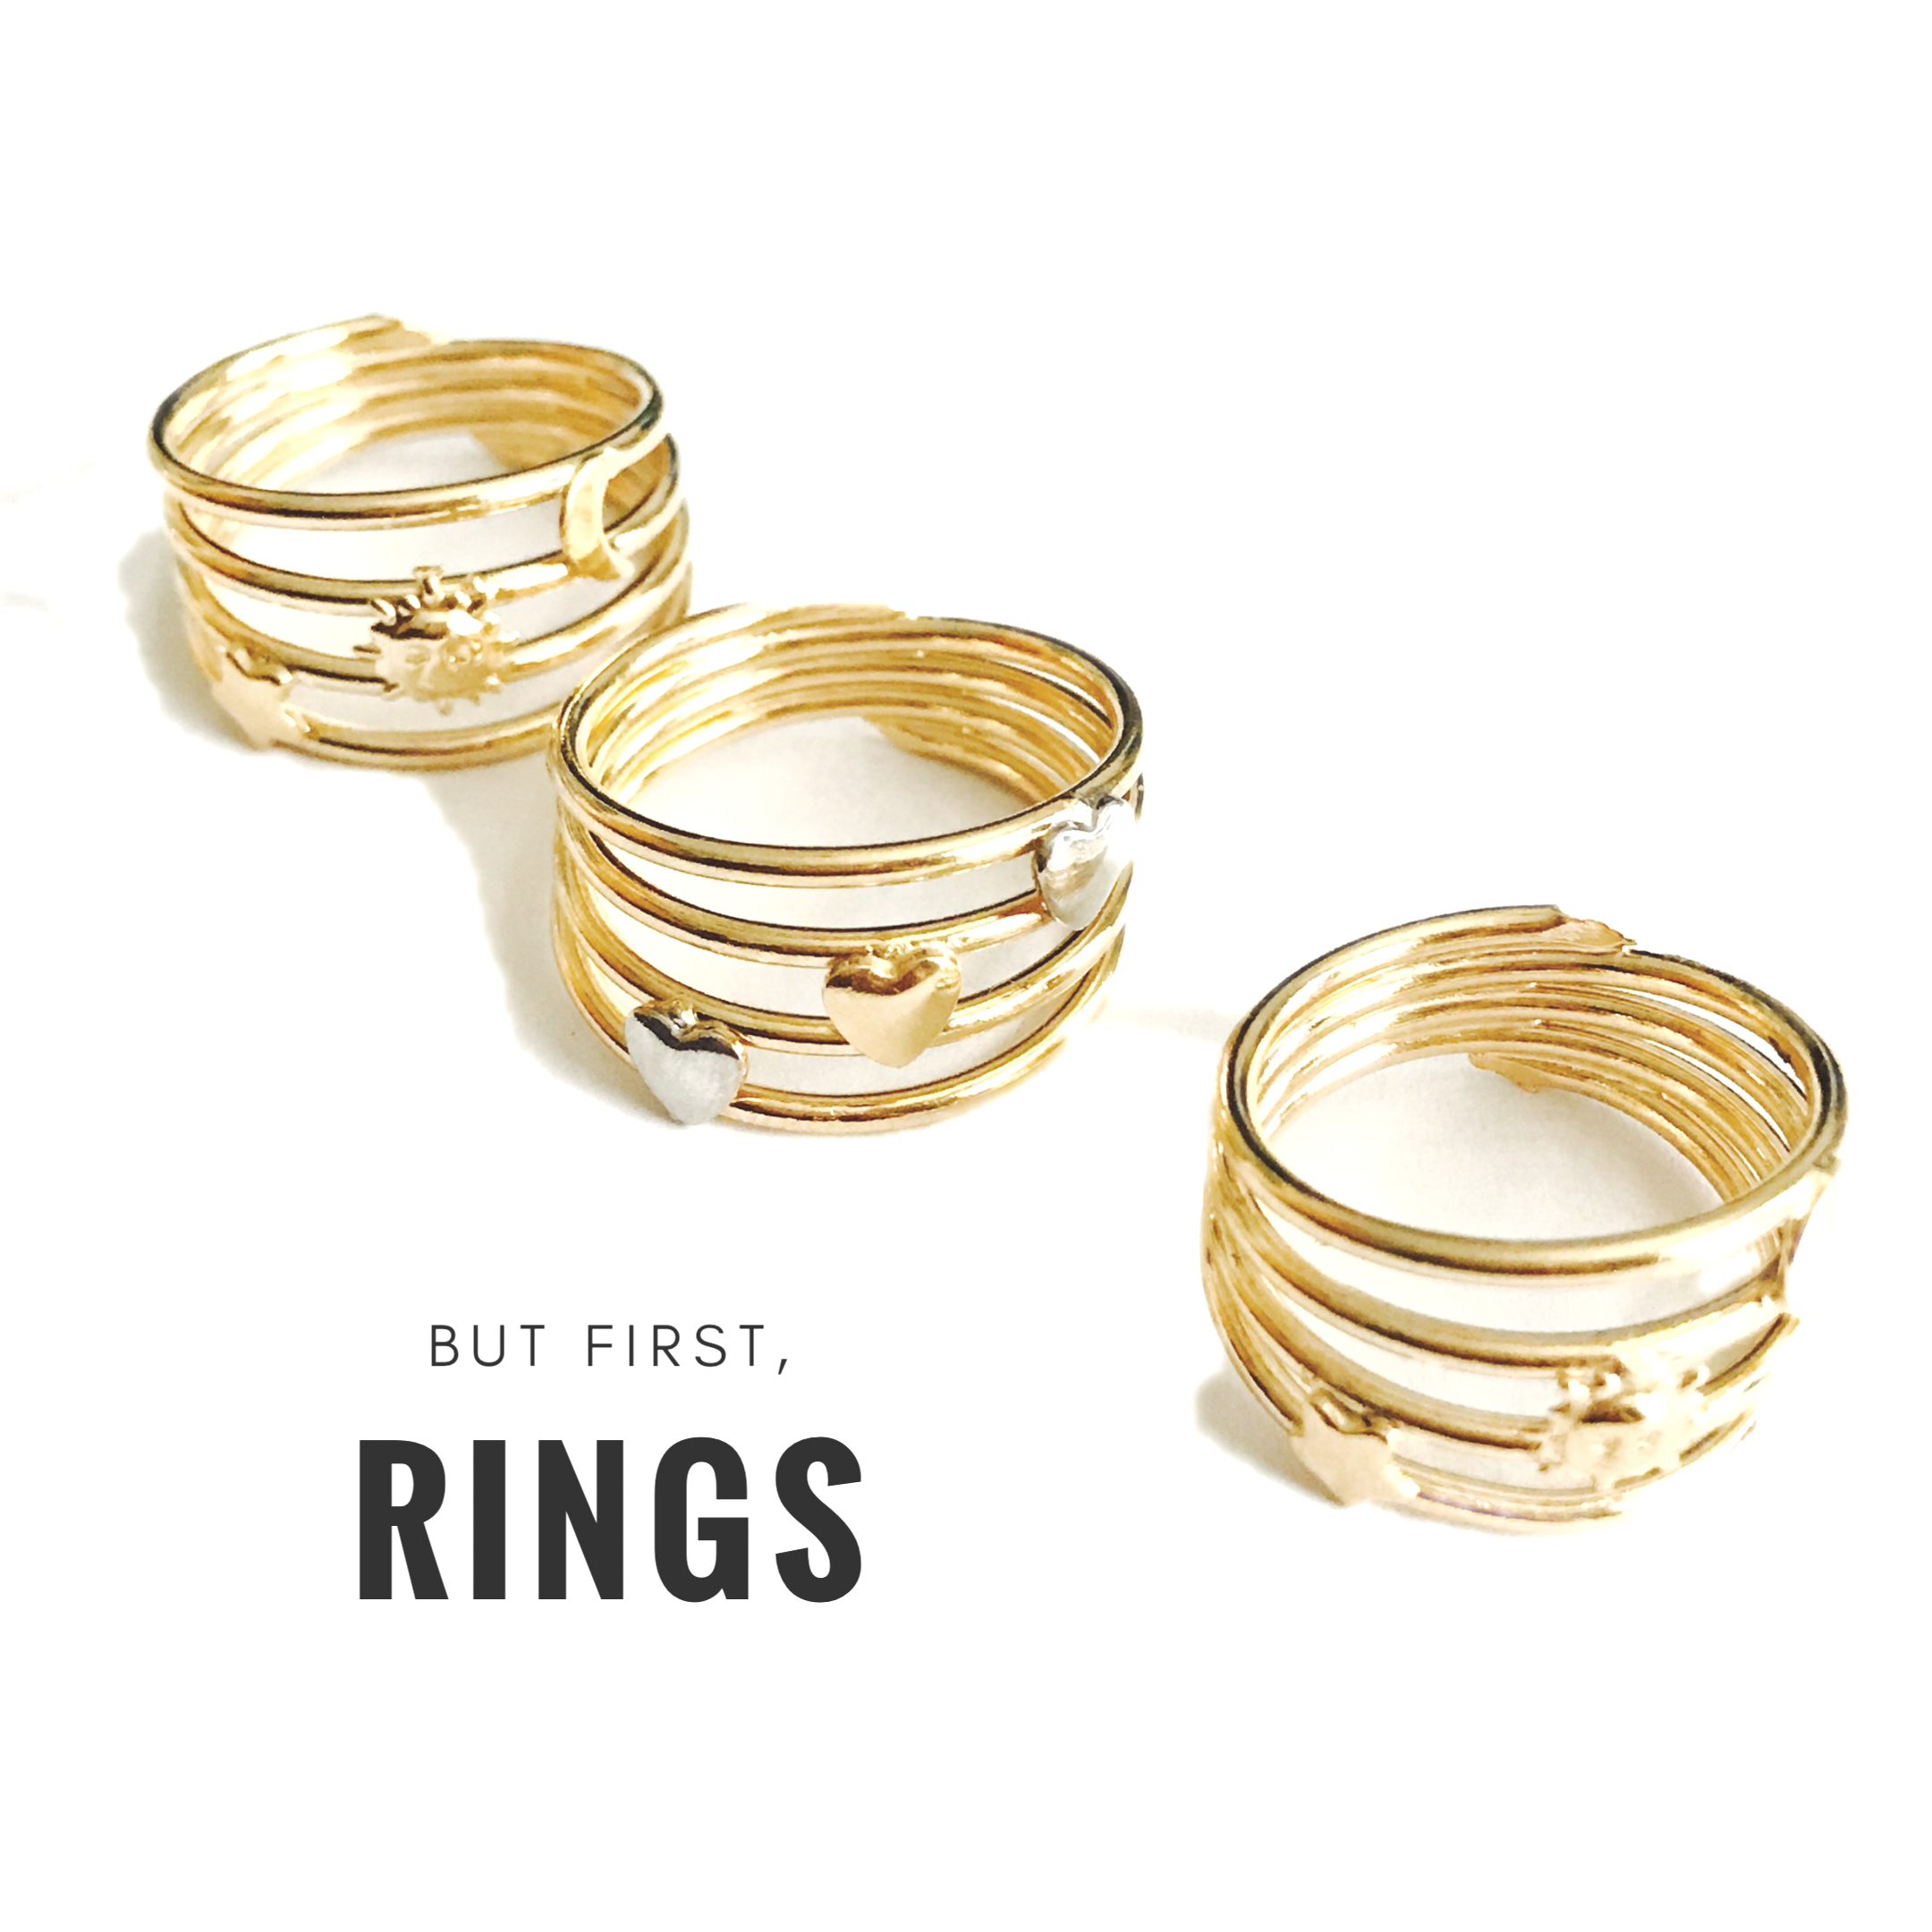 8a2caf252 18kTs of Brazilian Gold Plated Stackable's Rings | Gold Plated ...